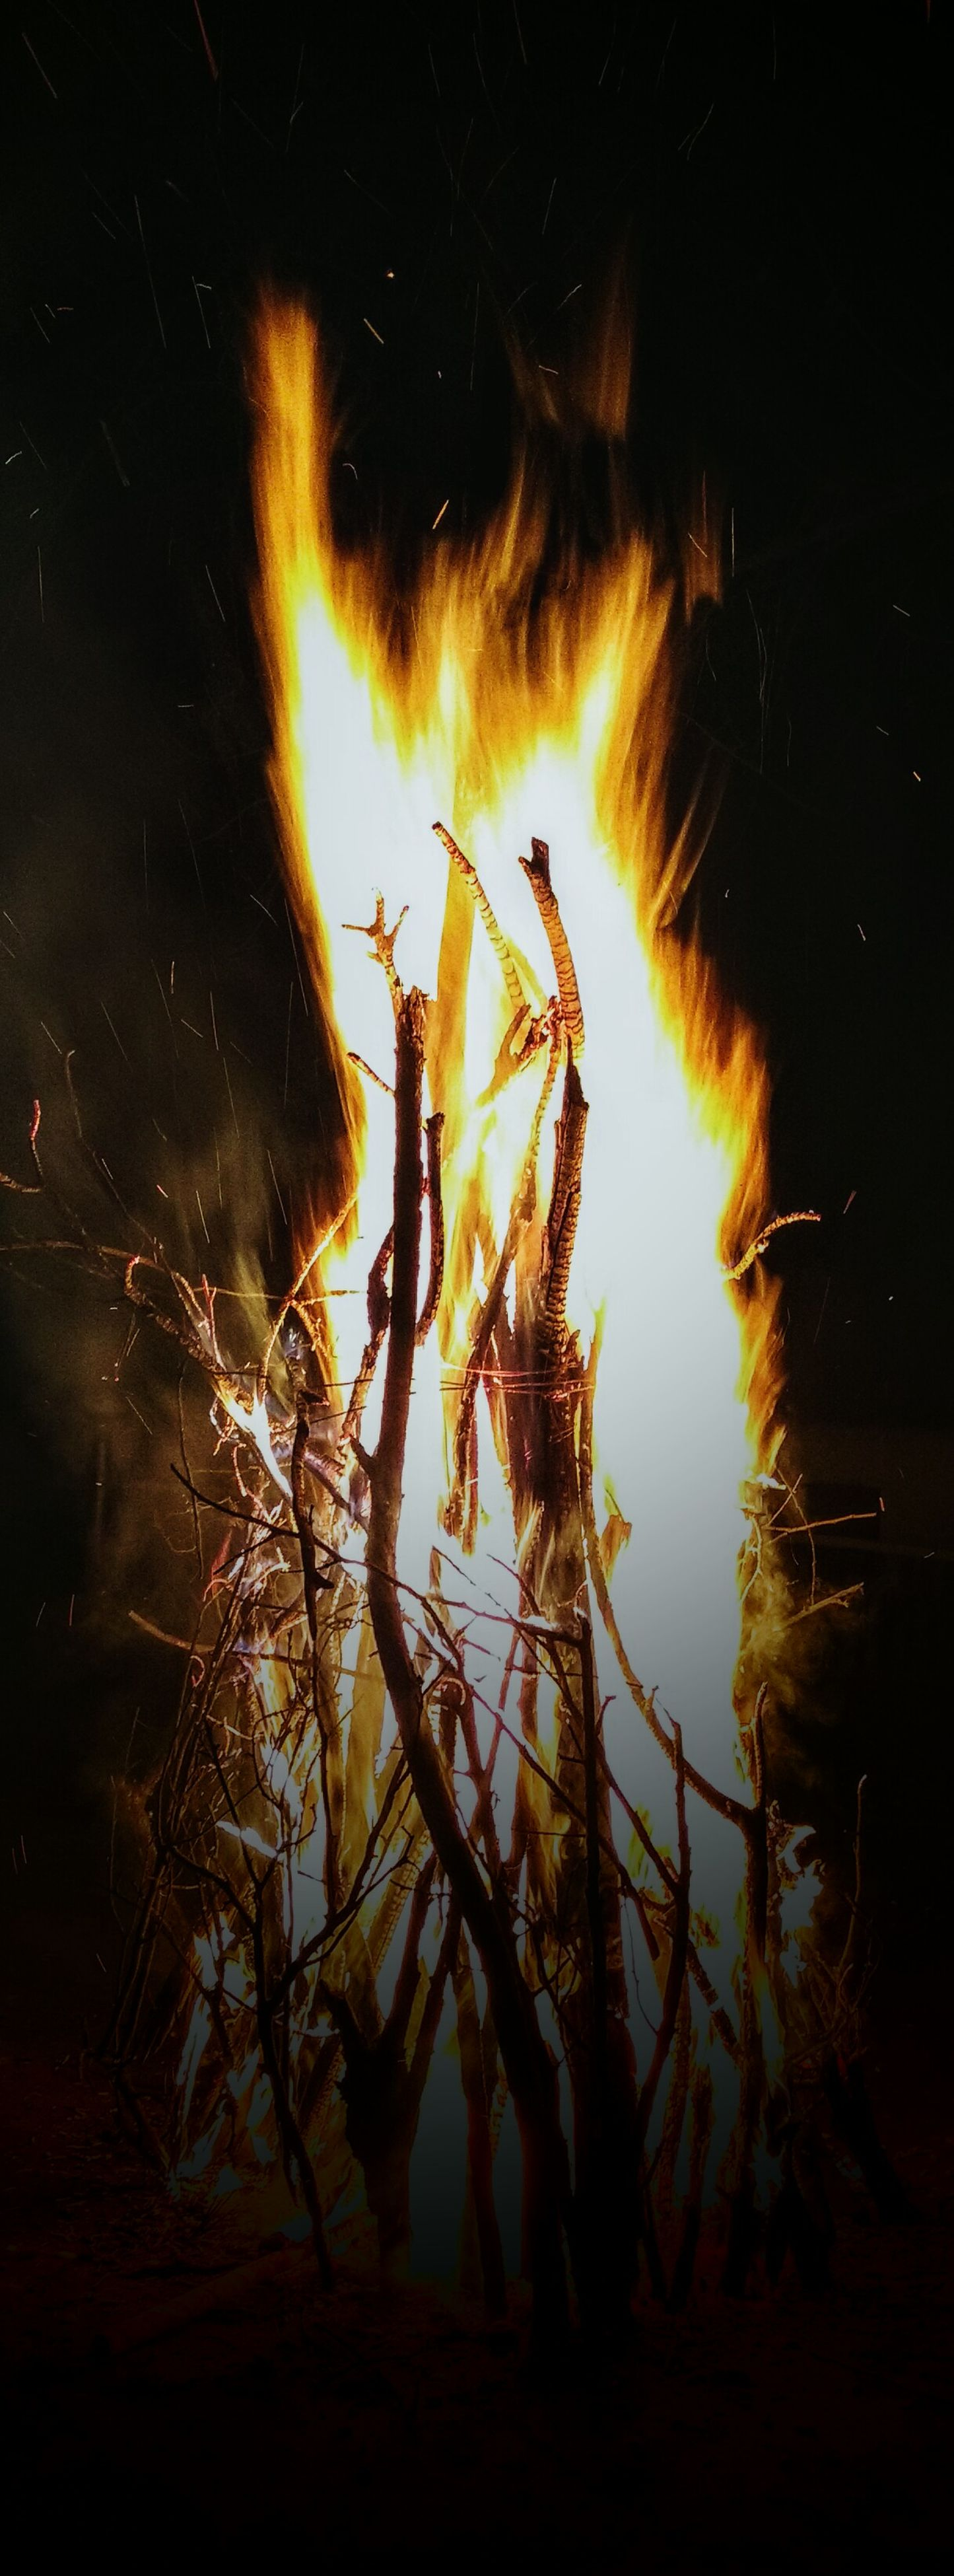 night, burning, fire - natural phenomenon, flame, silhouette, glowing, dark, heat - temperature, low angle view, outdoors, fire, illuminated, nature, tranquility, tree, bonfire, light - natural phenomenon, no people, sky, wood - material